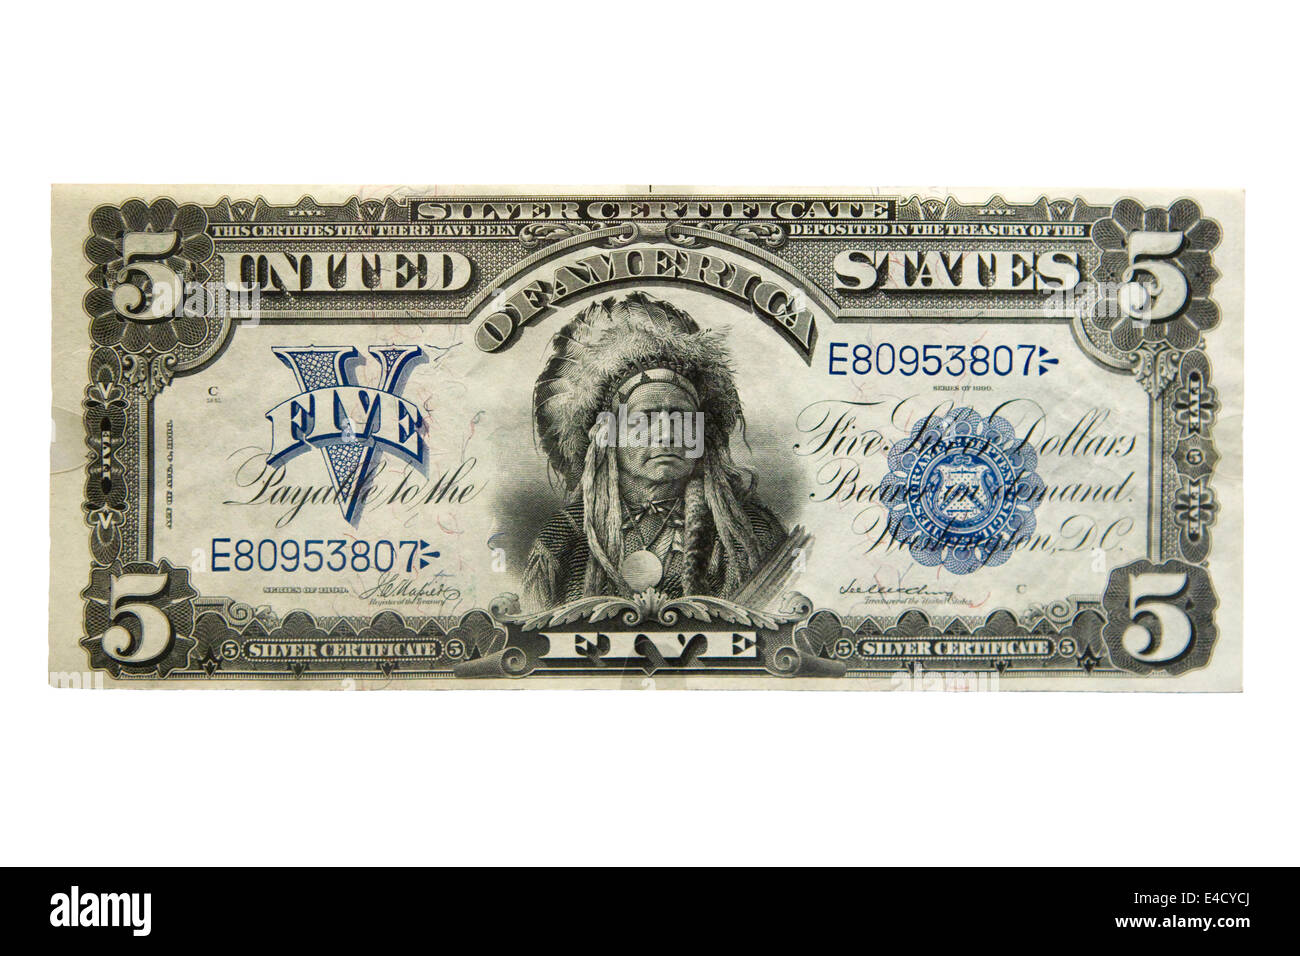 Obverse view of rare 1899 $5 (The Chief Note)  American banknote cutout - Stock Image